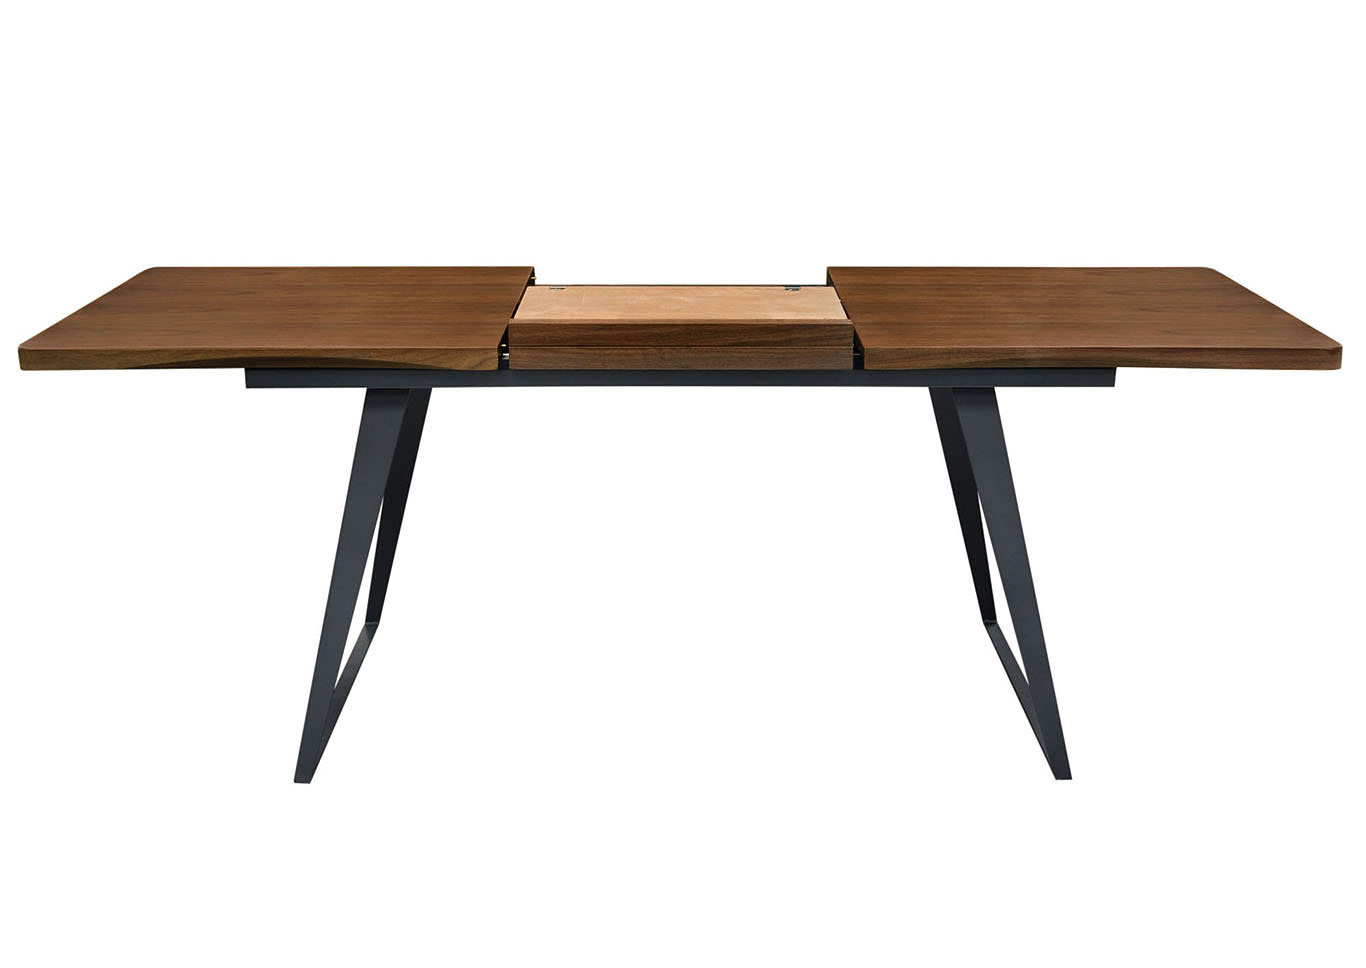 Tempo Extension Dining Table w/Walnut Top & Black Powder Coated Legs,Diamond Sofa